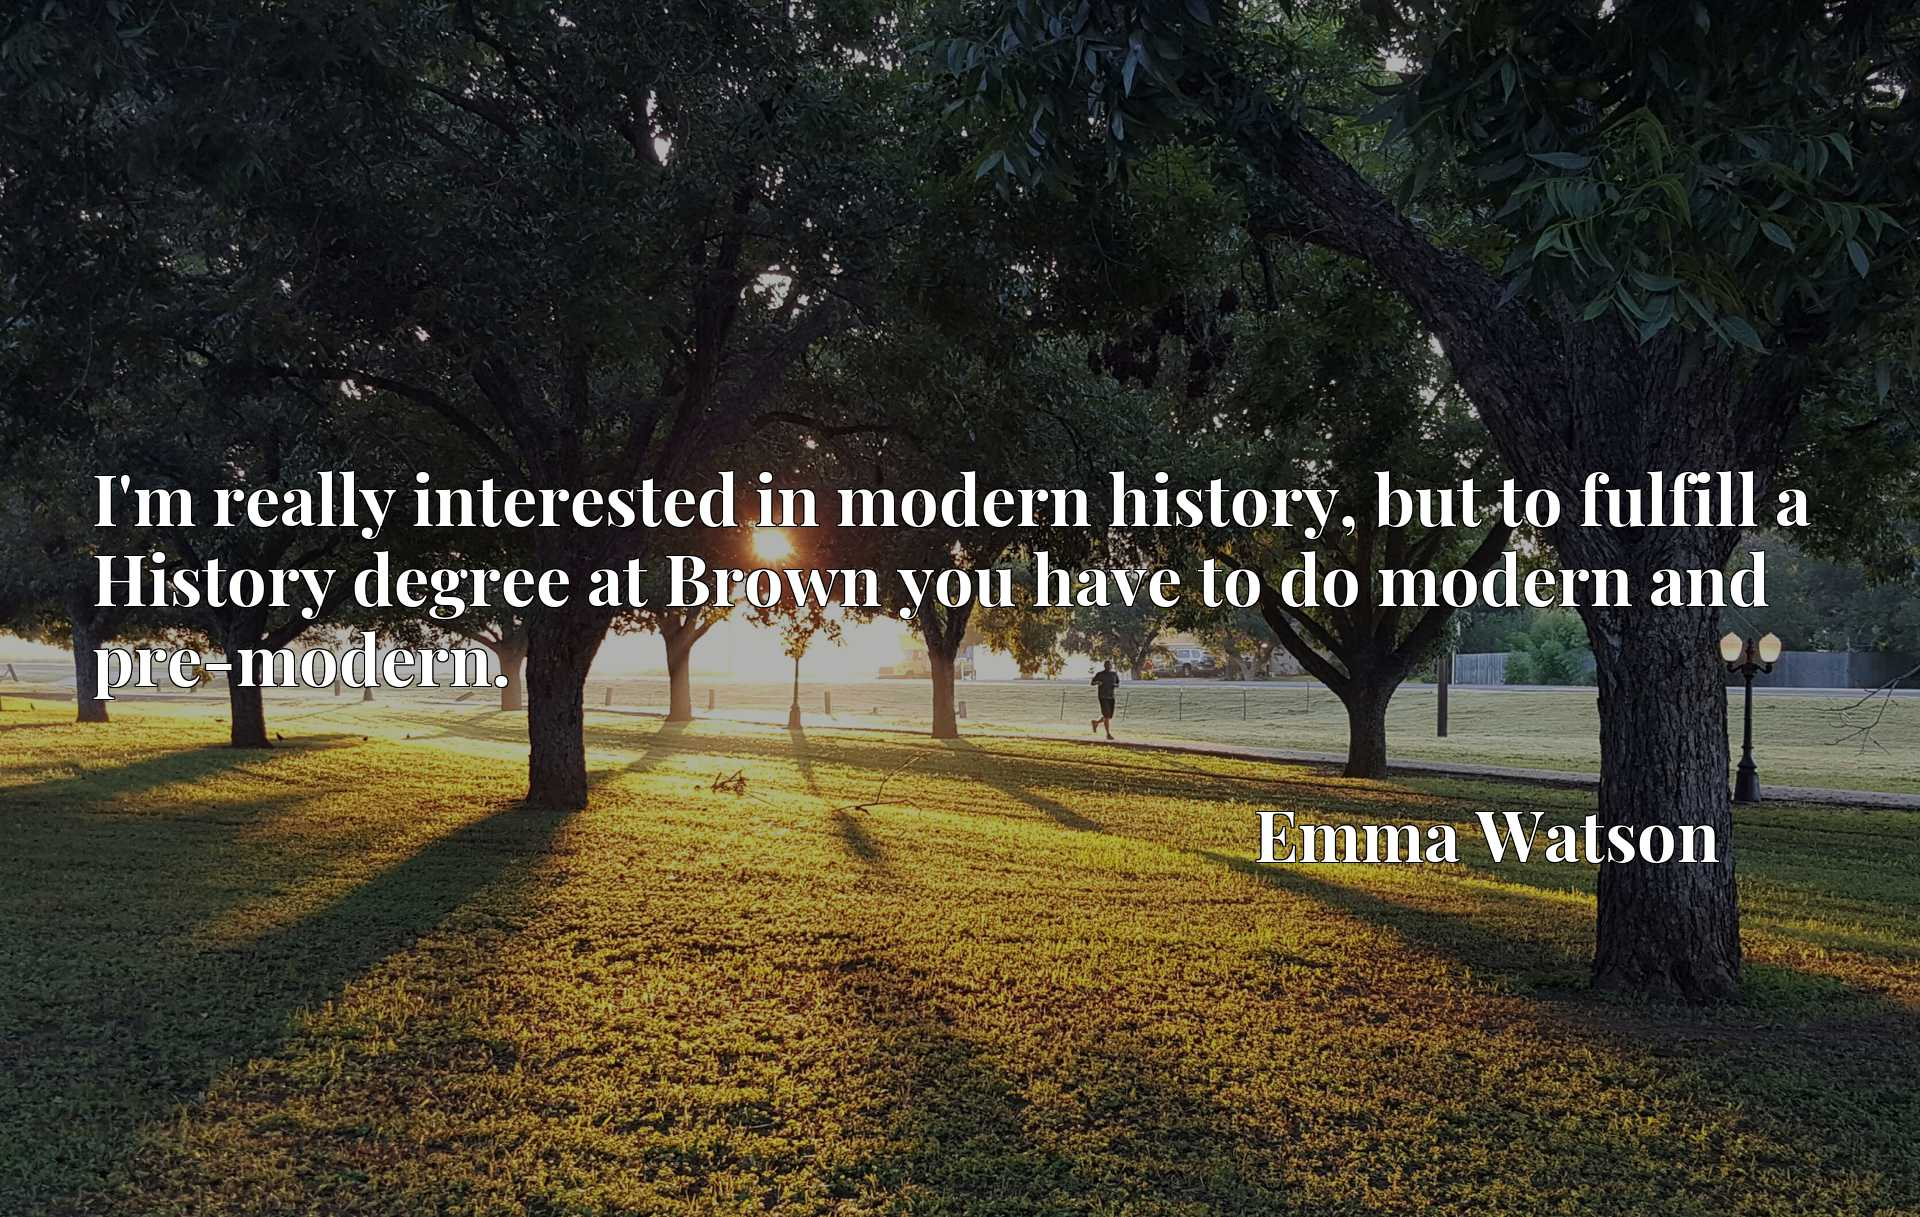 I'm really interested in modern history, but to fulfill a History degree at Brown you have to do modern and pre-modern.